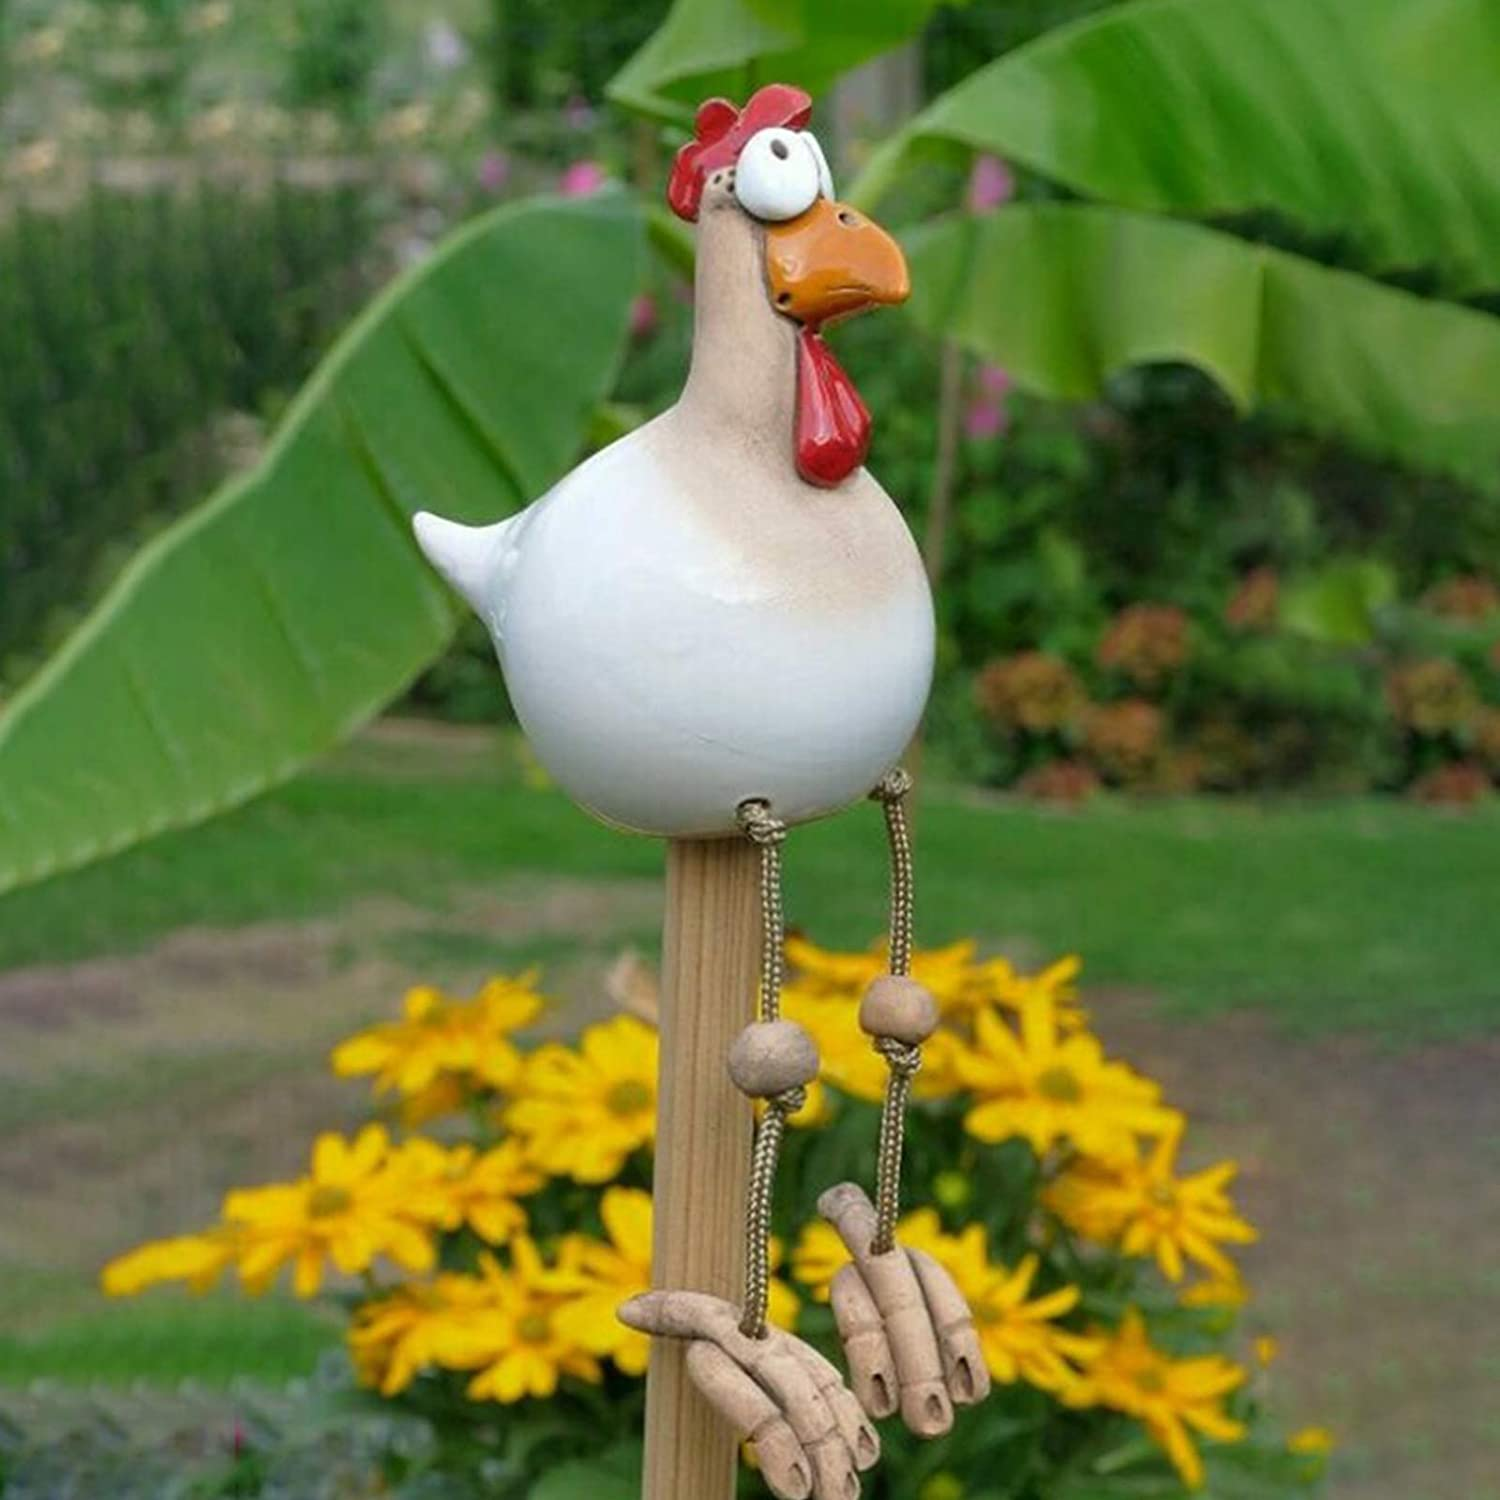 Funny Chicken Decor Yard Art, Resin Rooster Outdoor Statues Decorative Garden Stakes Resin Chicken Outdoor Statues Garden Animals Decor Farm Patio Yard Lawn Decoration Sculptures (White)